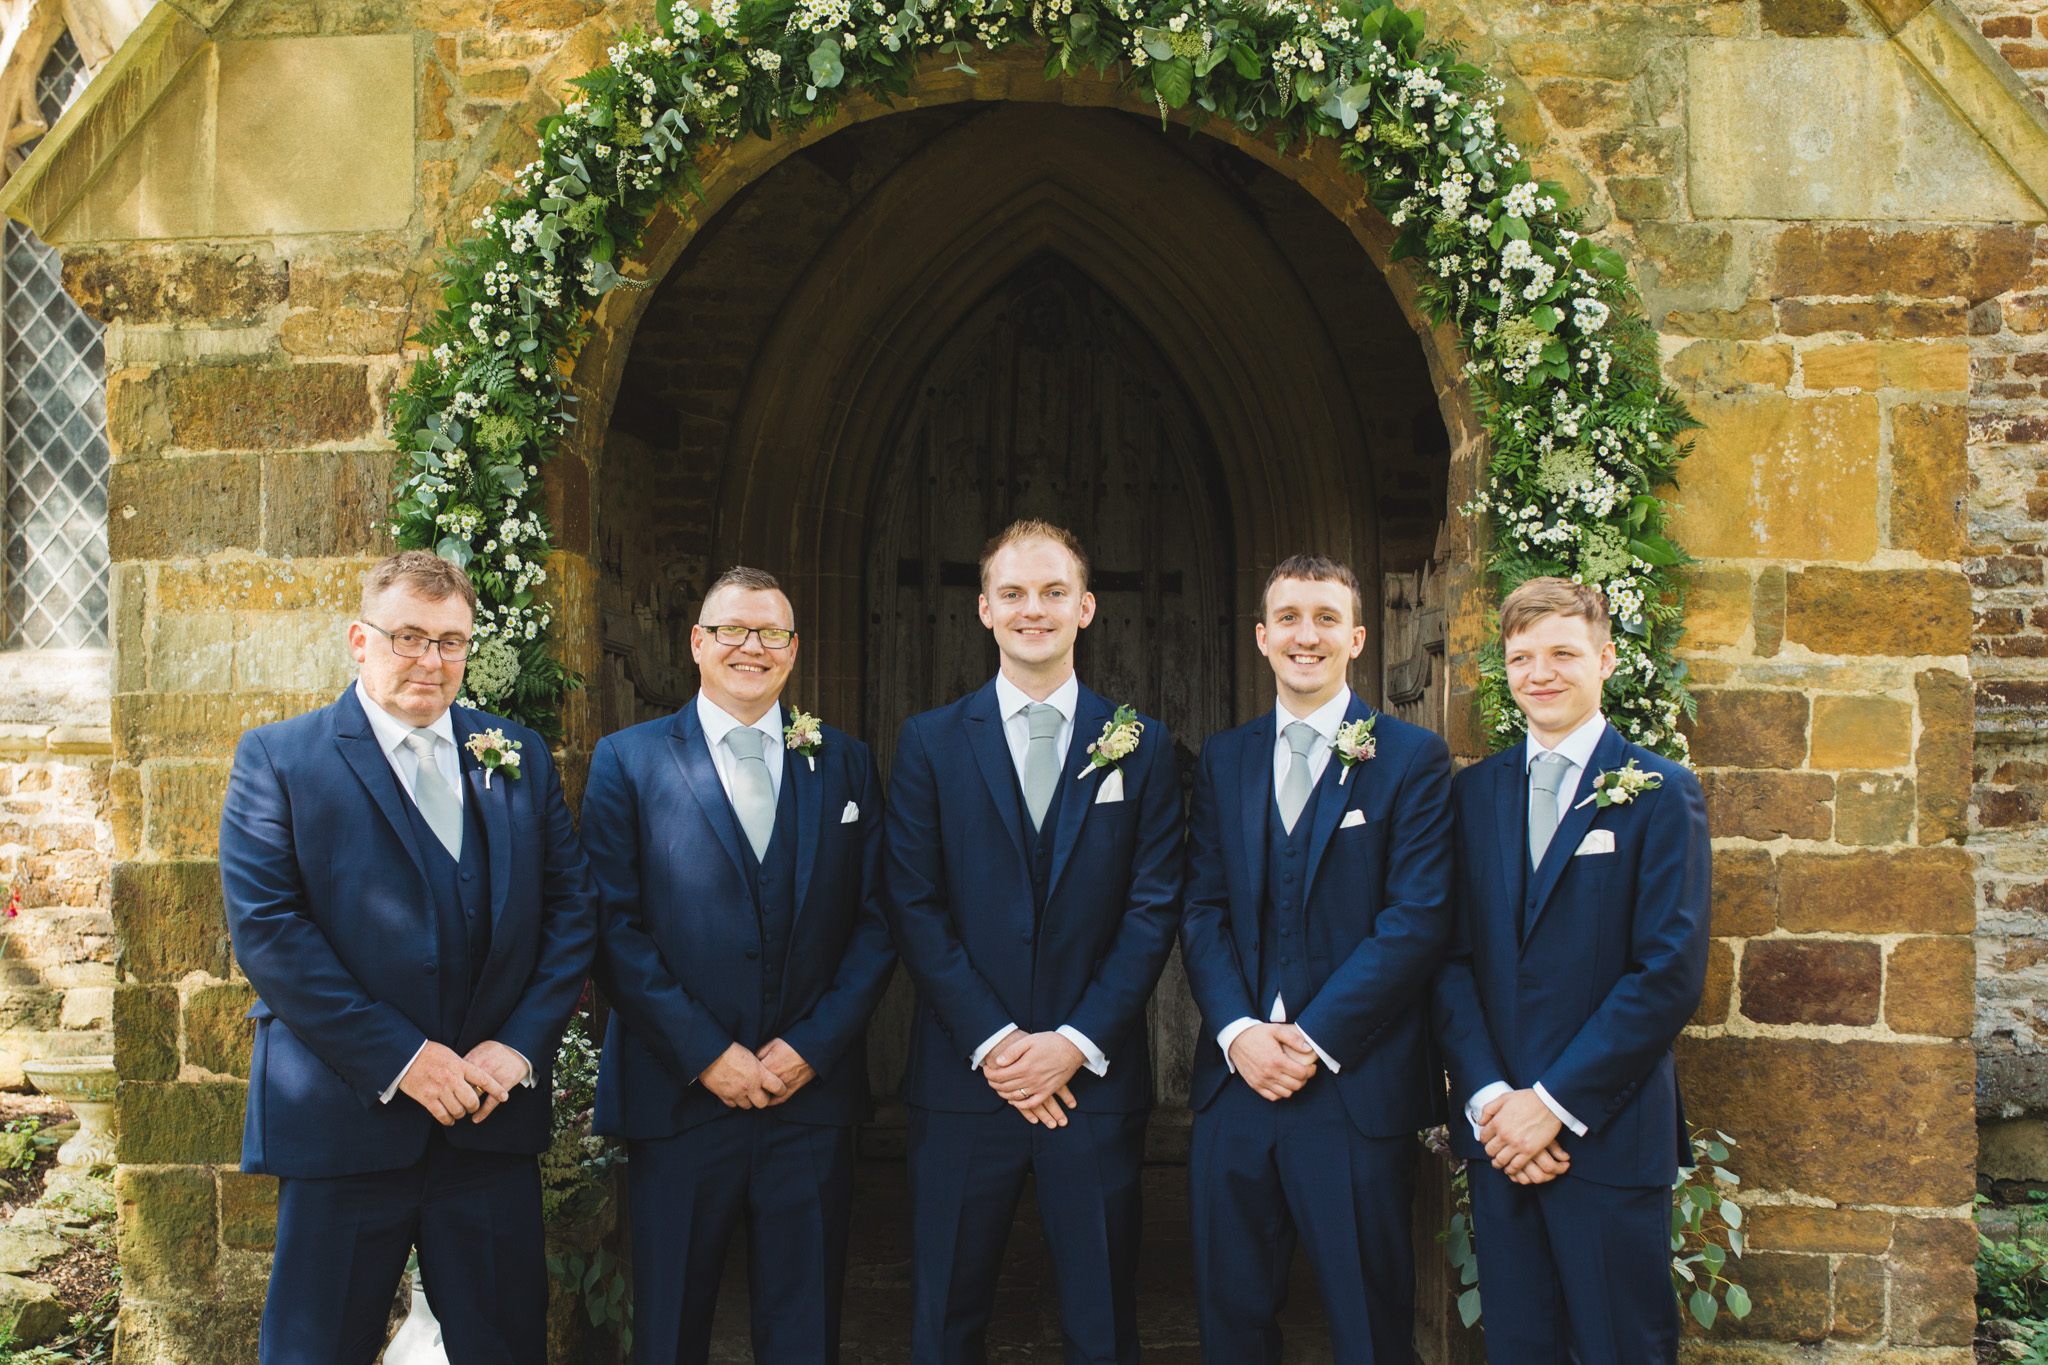 barns-at-hunsbury-hill-northampton-wedding-photography_web__1405__38A6945.jpg